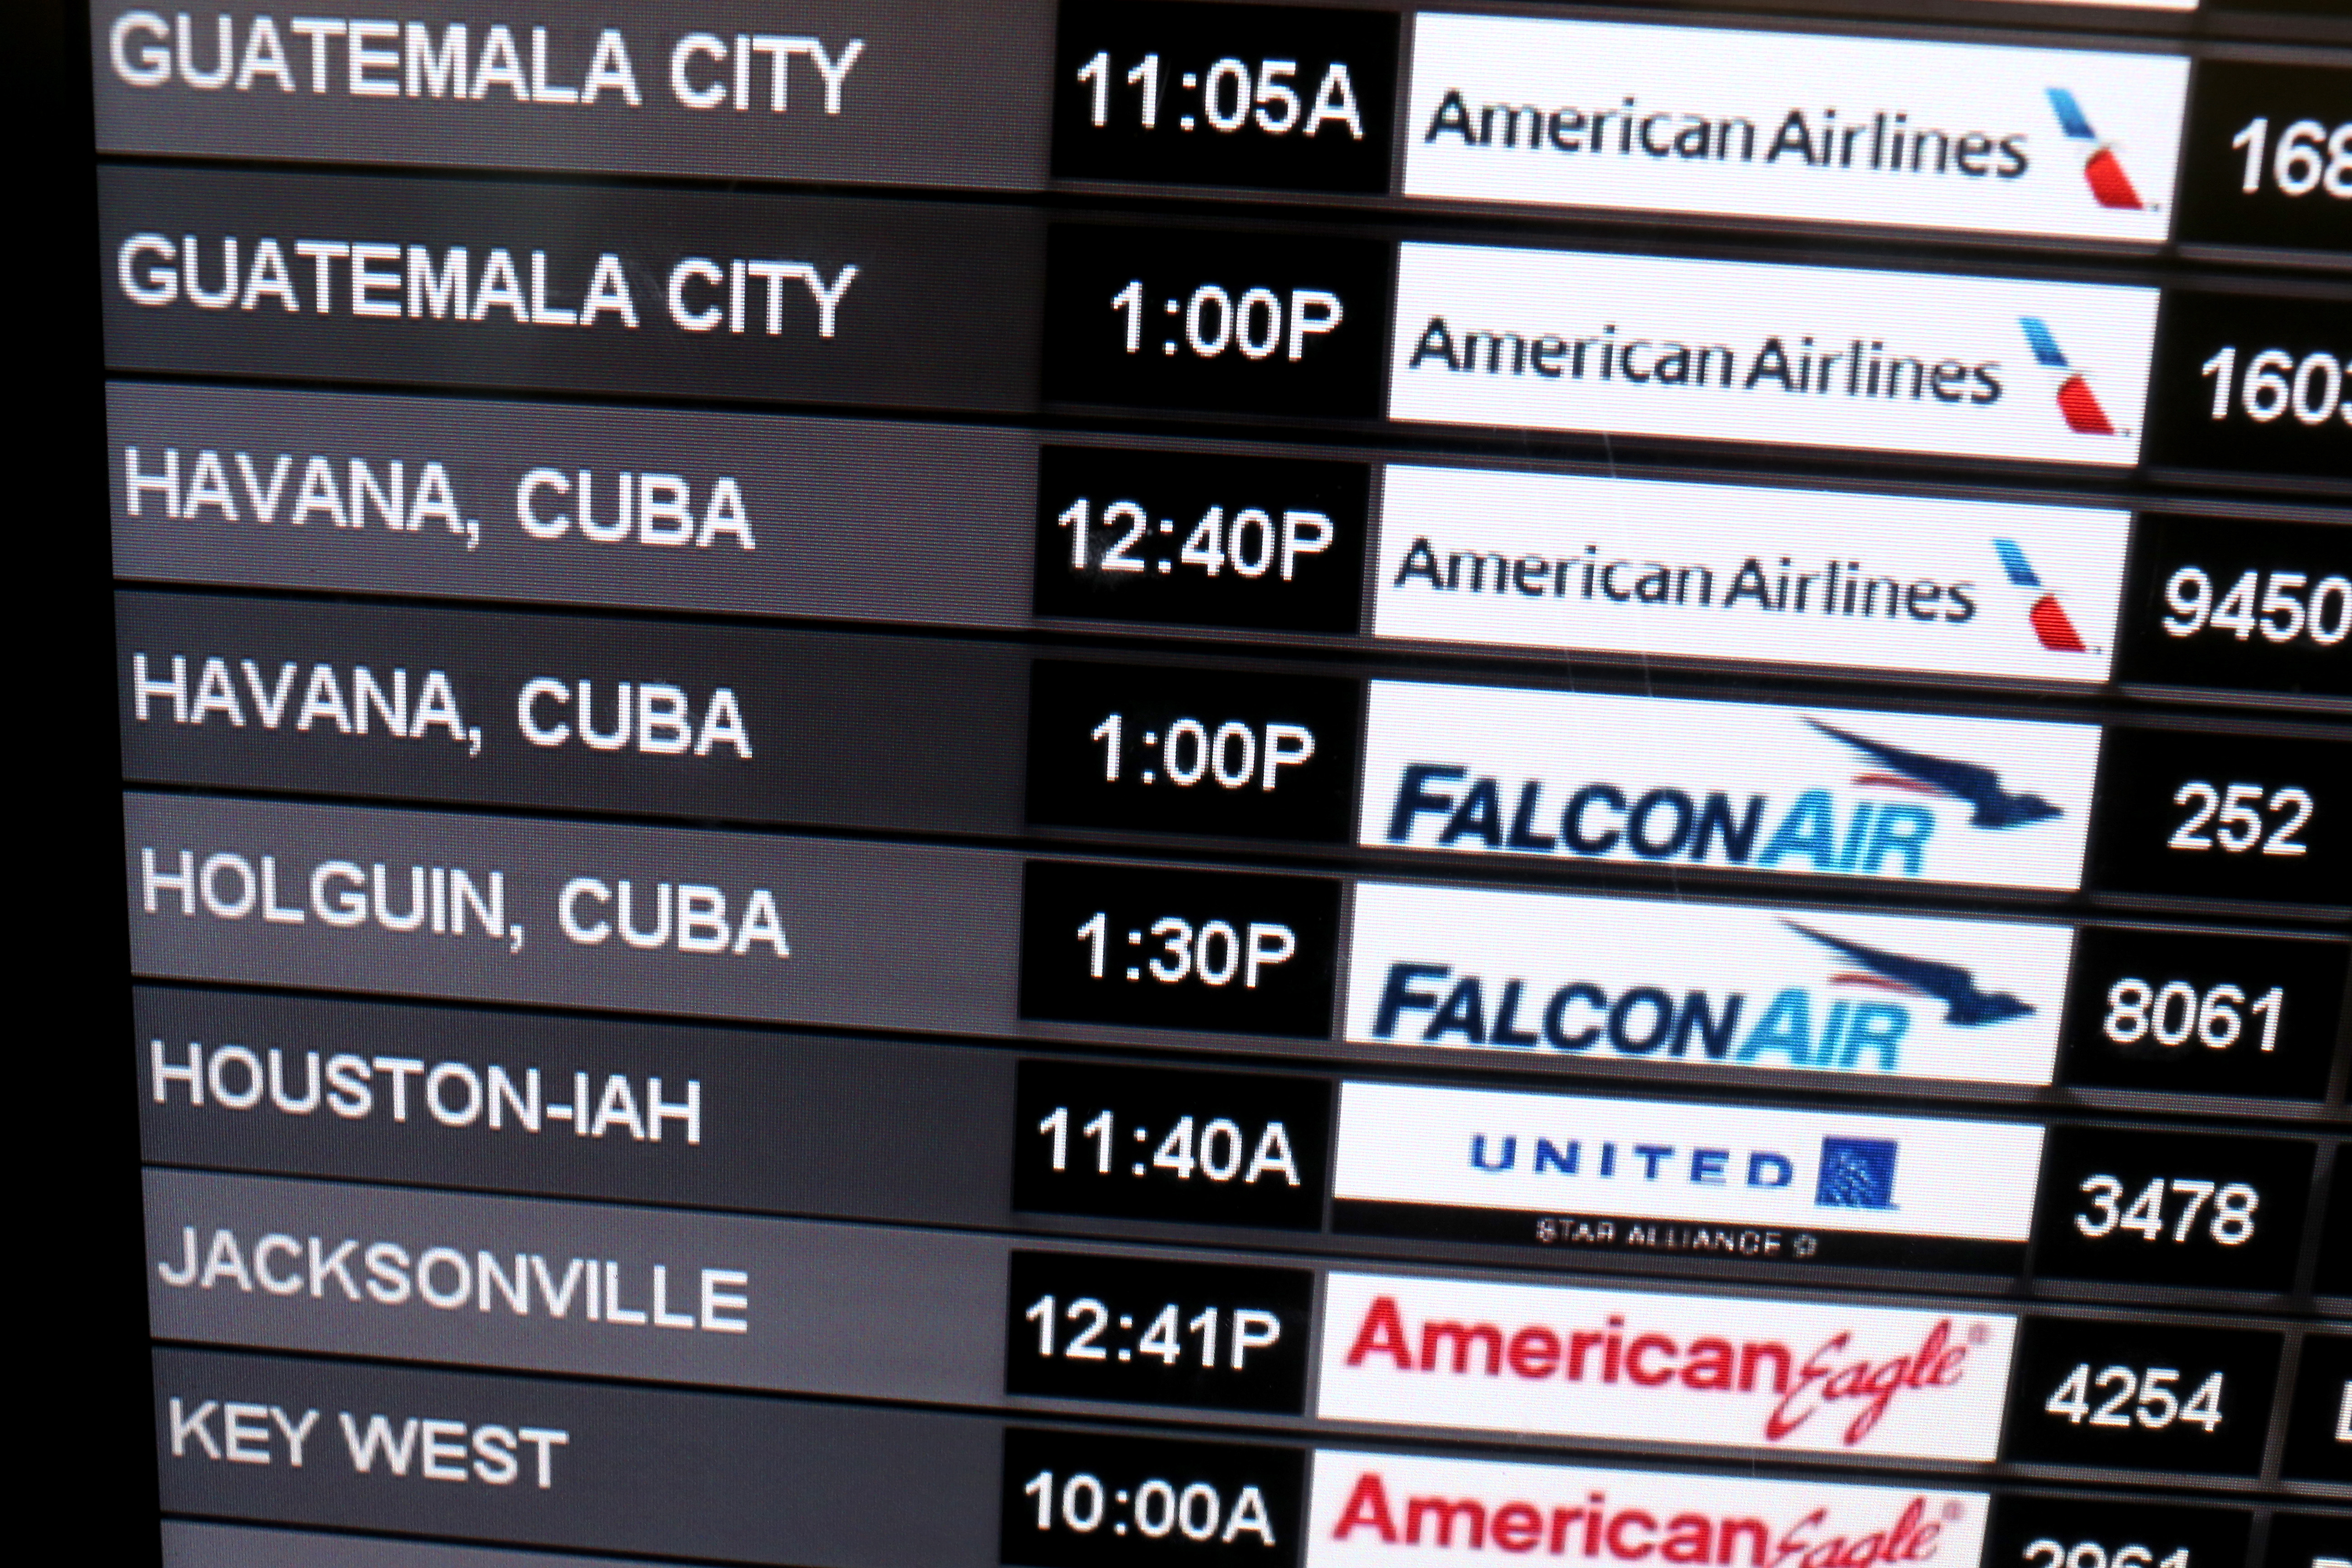 Departure times for flights to Cuba at Miami International Airport